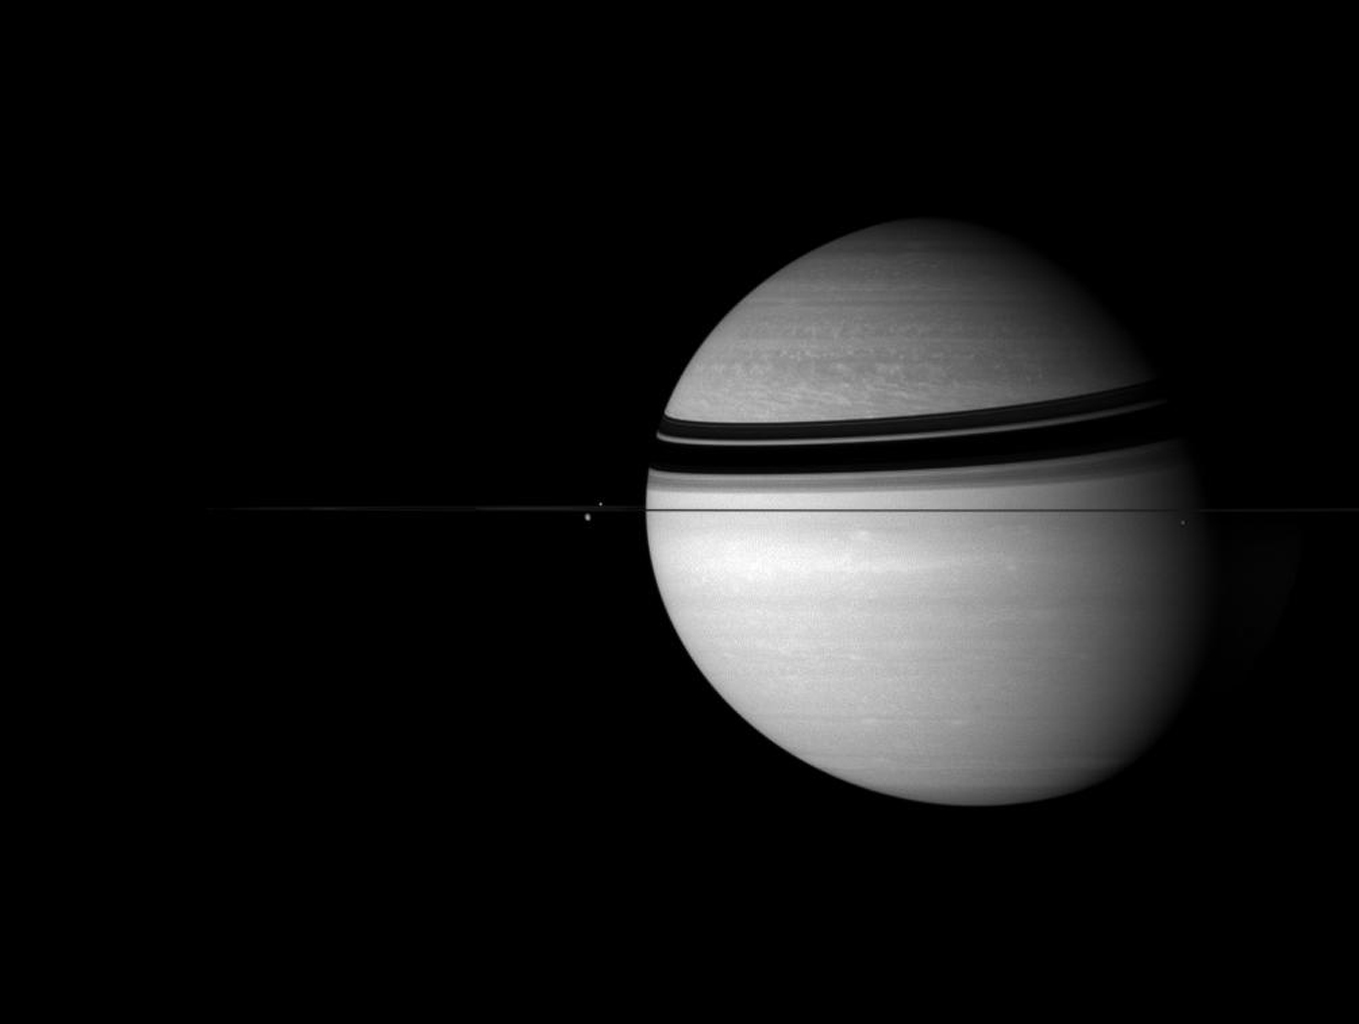 Saturn sits with its attendants in the icy depths of the outer Solar System in this image from NASA's Cassini spacecraft.